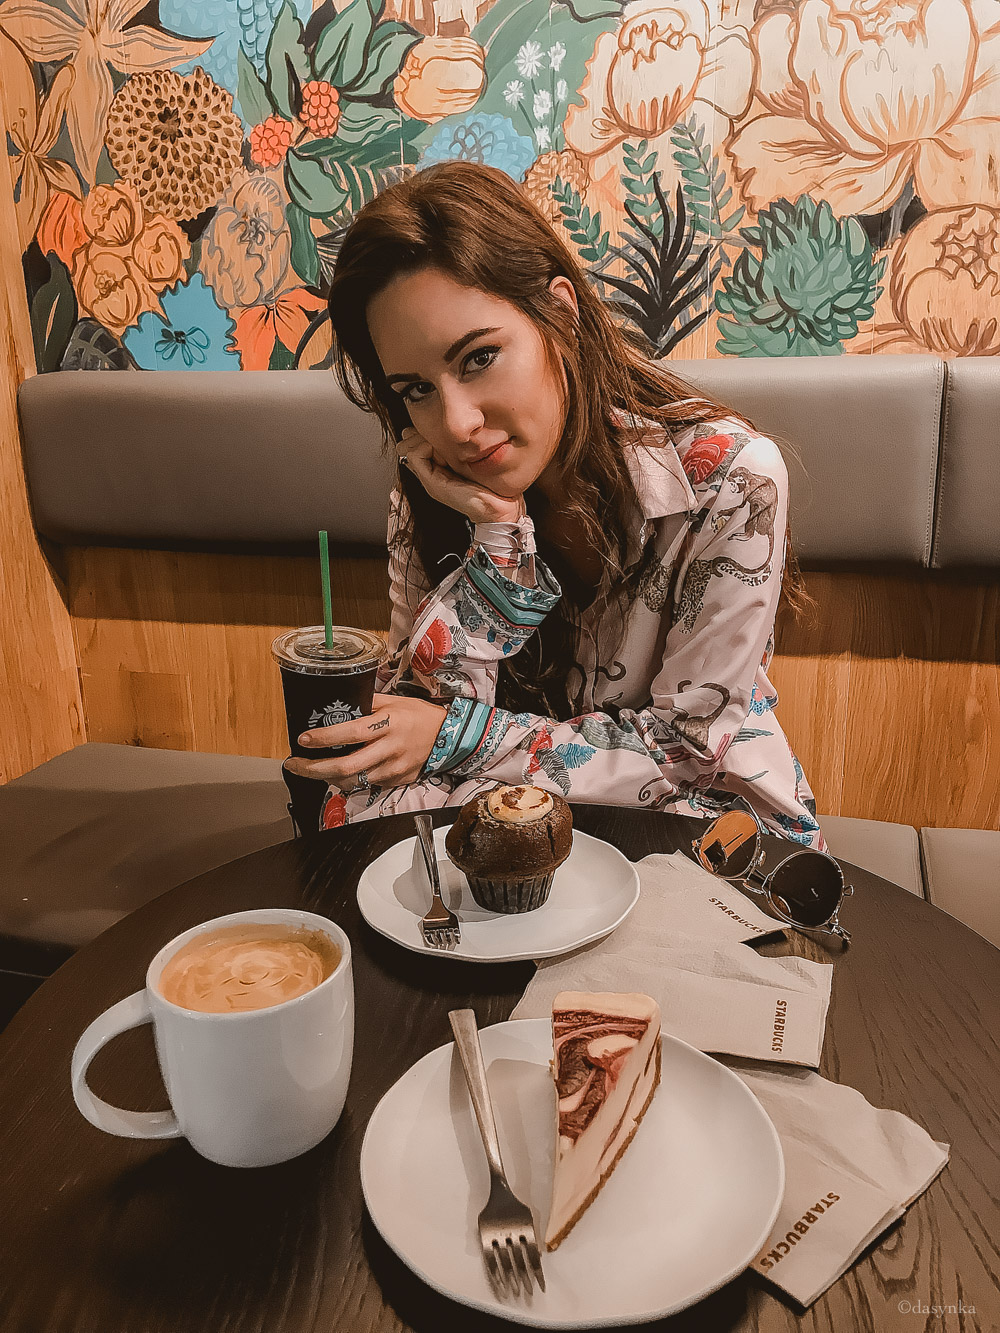 dasynka-fashion-blog-blogger-influencer-inspiration-shooting-model-globettrotter-travel-girl-lookbook-instagram-long-hair-street-style-casual-italy-lifestyle-outfit-poses-valencia-starbucks-frappuccino-cappuccino-pumpkin-spice-latte-psl-muffin-zaful-animalier-pink-culotte-shirt-cheesecake